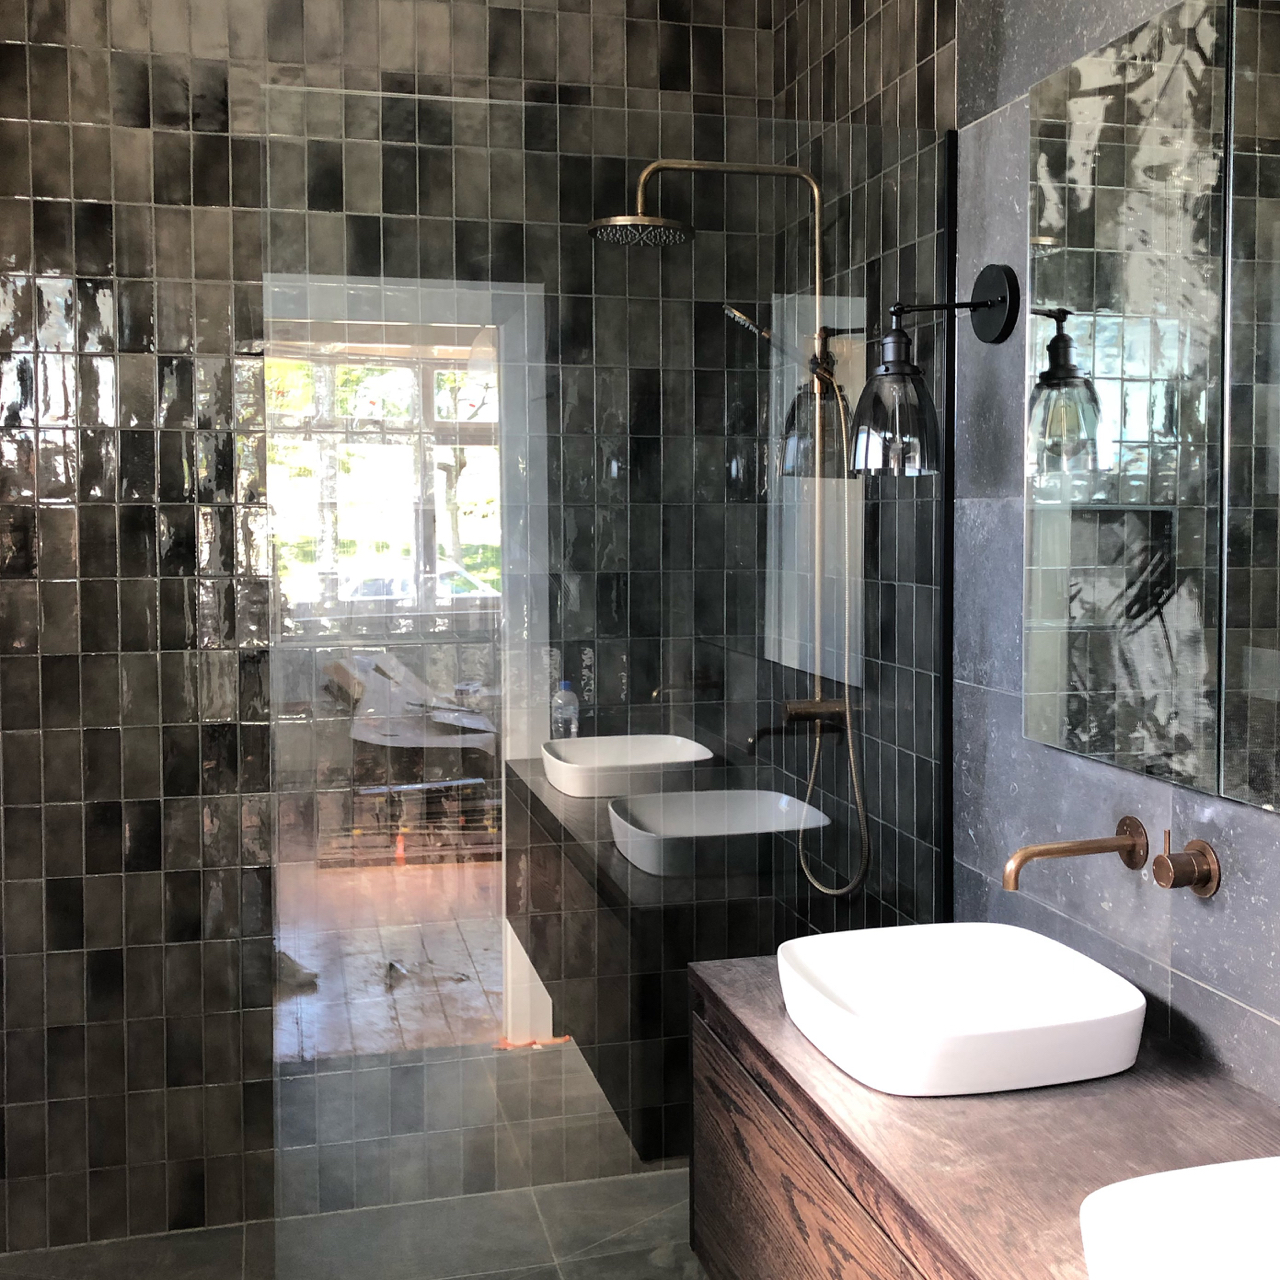 Beautiful dark tiles from Artedomus  https://www.artedomus.co.nz/   Tapware and vanity from Plumbline  https://www.plumbline.co.nz/